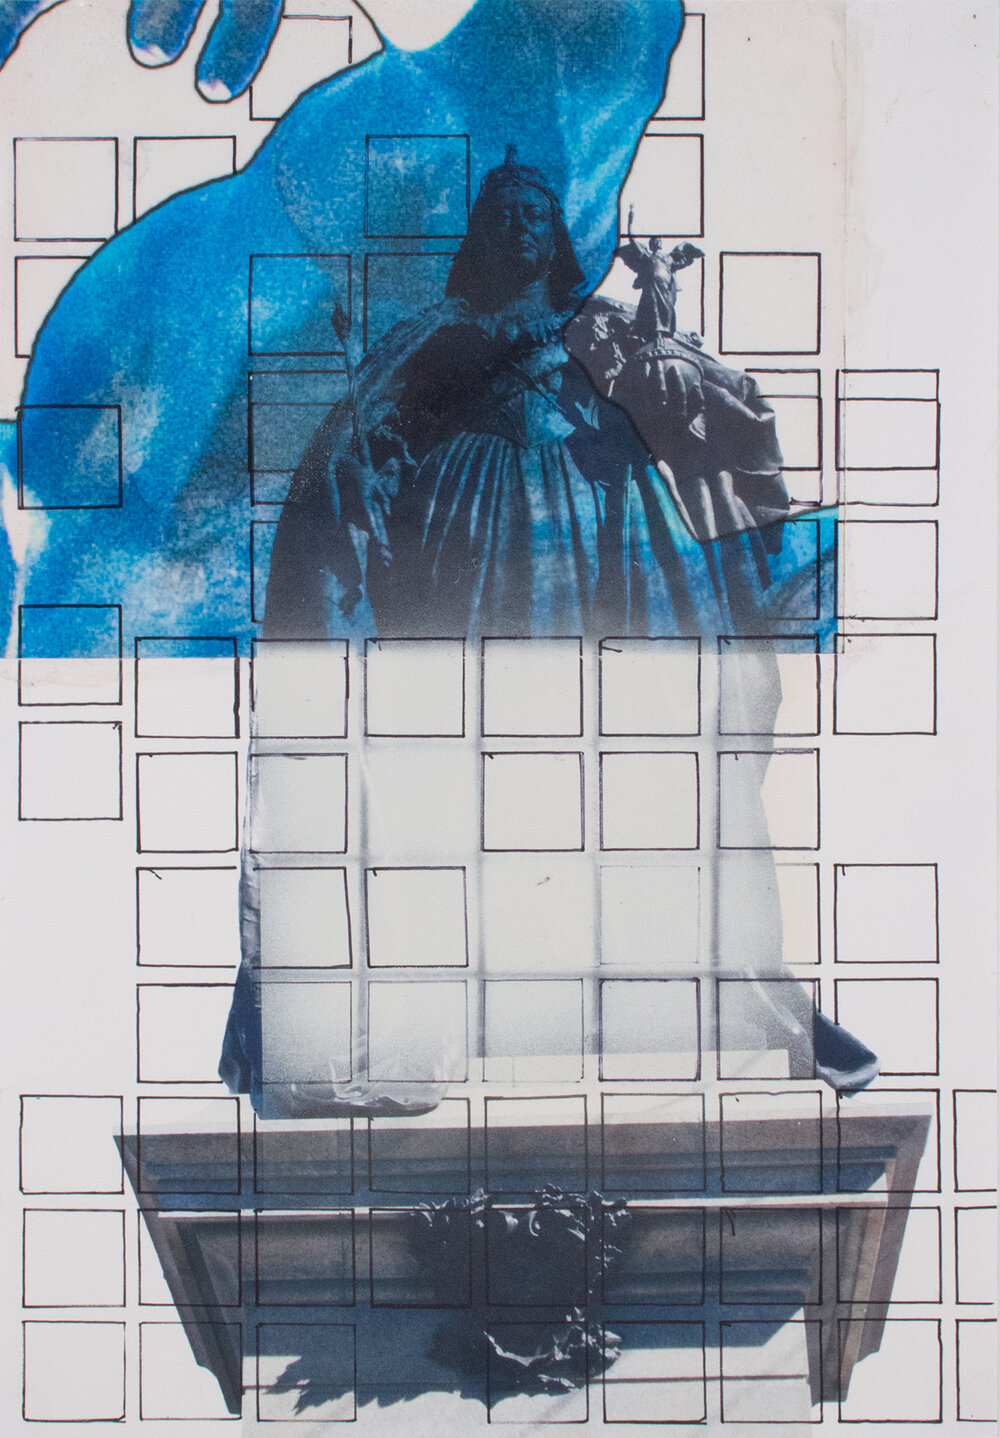 Queen Victoria Squares and Arm , 19″ x 13″, Digital Print, Acetate, sharpie and spray paint on paper, 2015